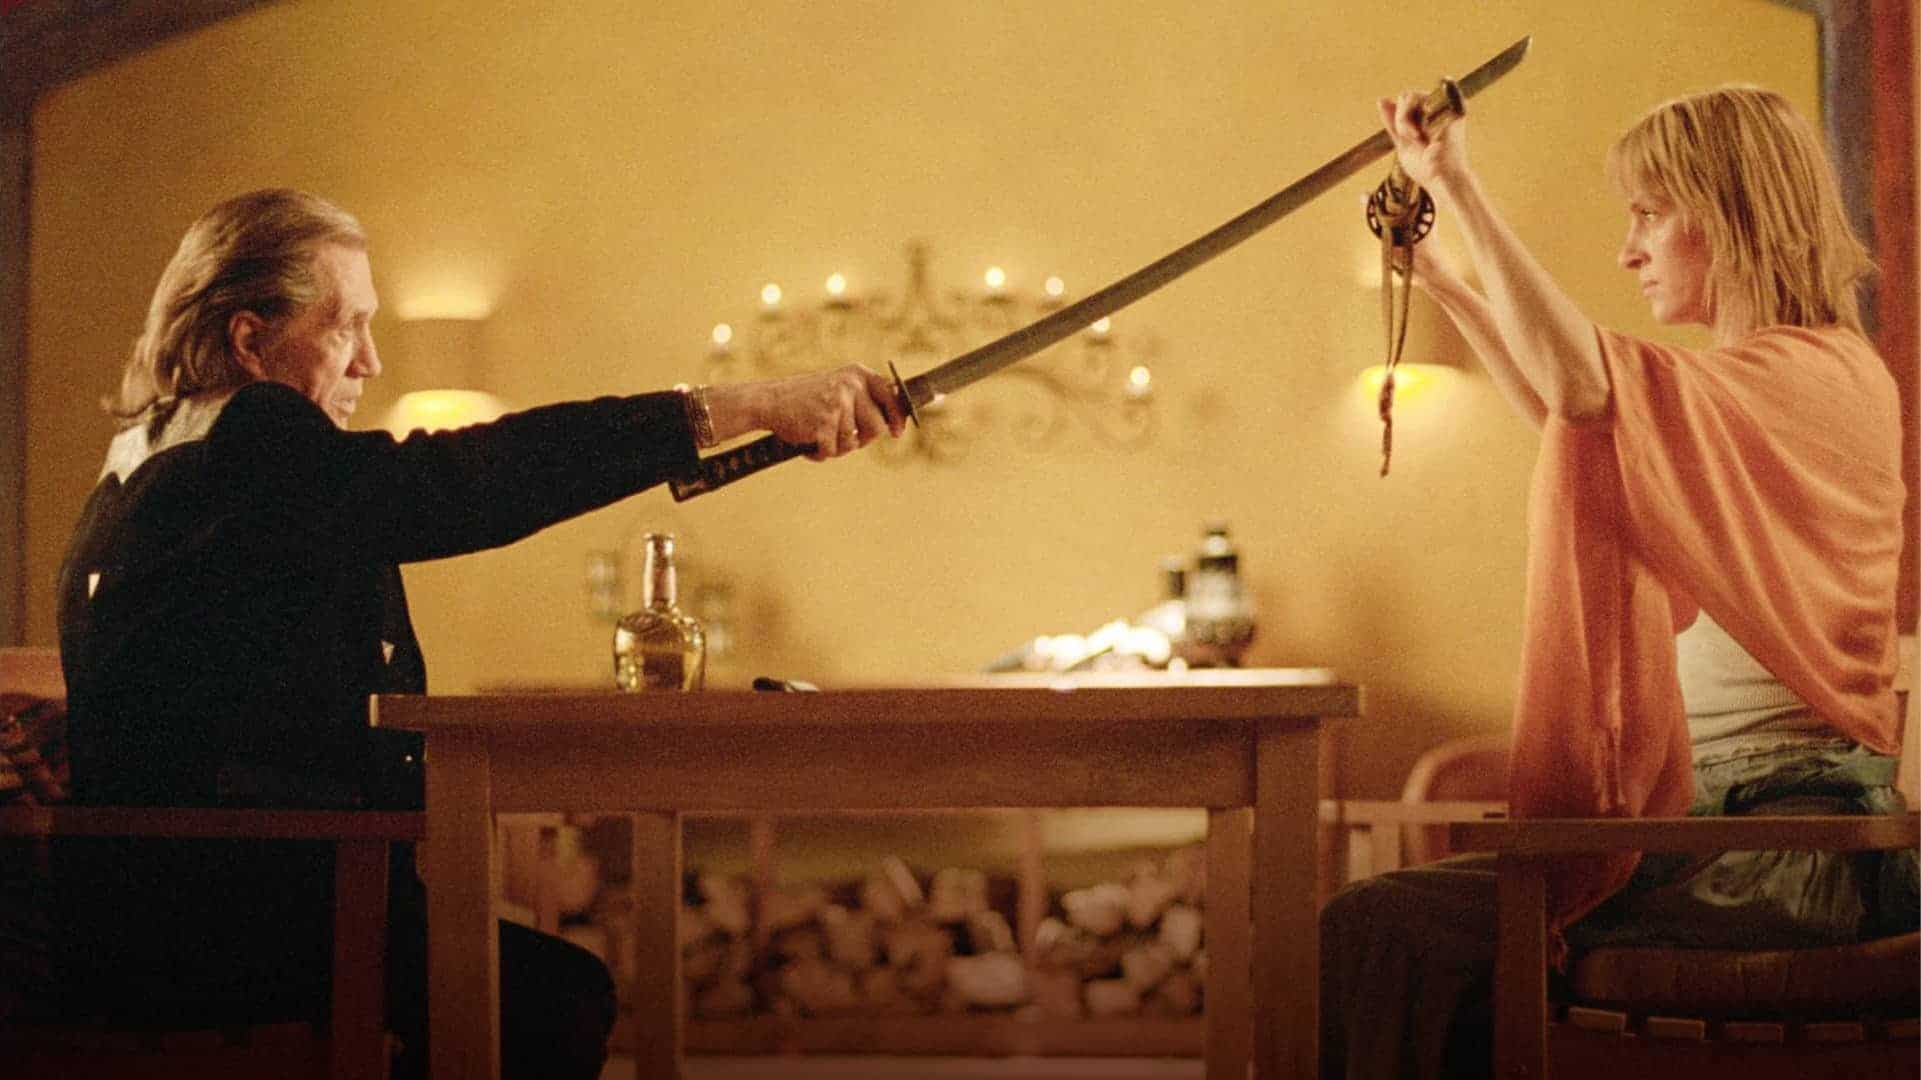 How to Write Dialogue Like Quentin Tarantino - Kill Bill Analysis - Featured - StudioBinder